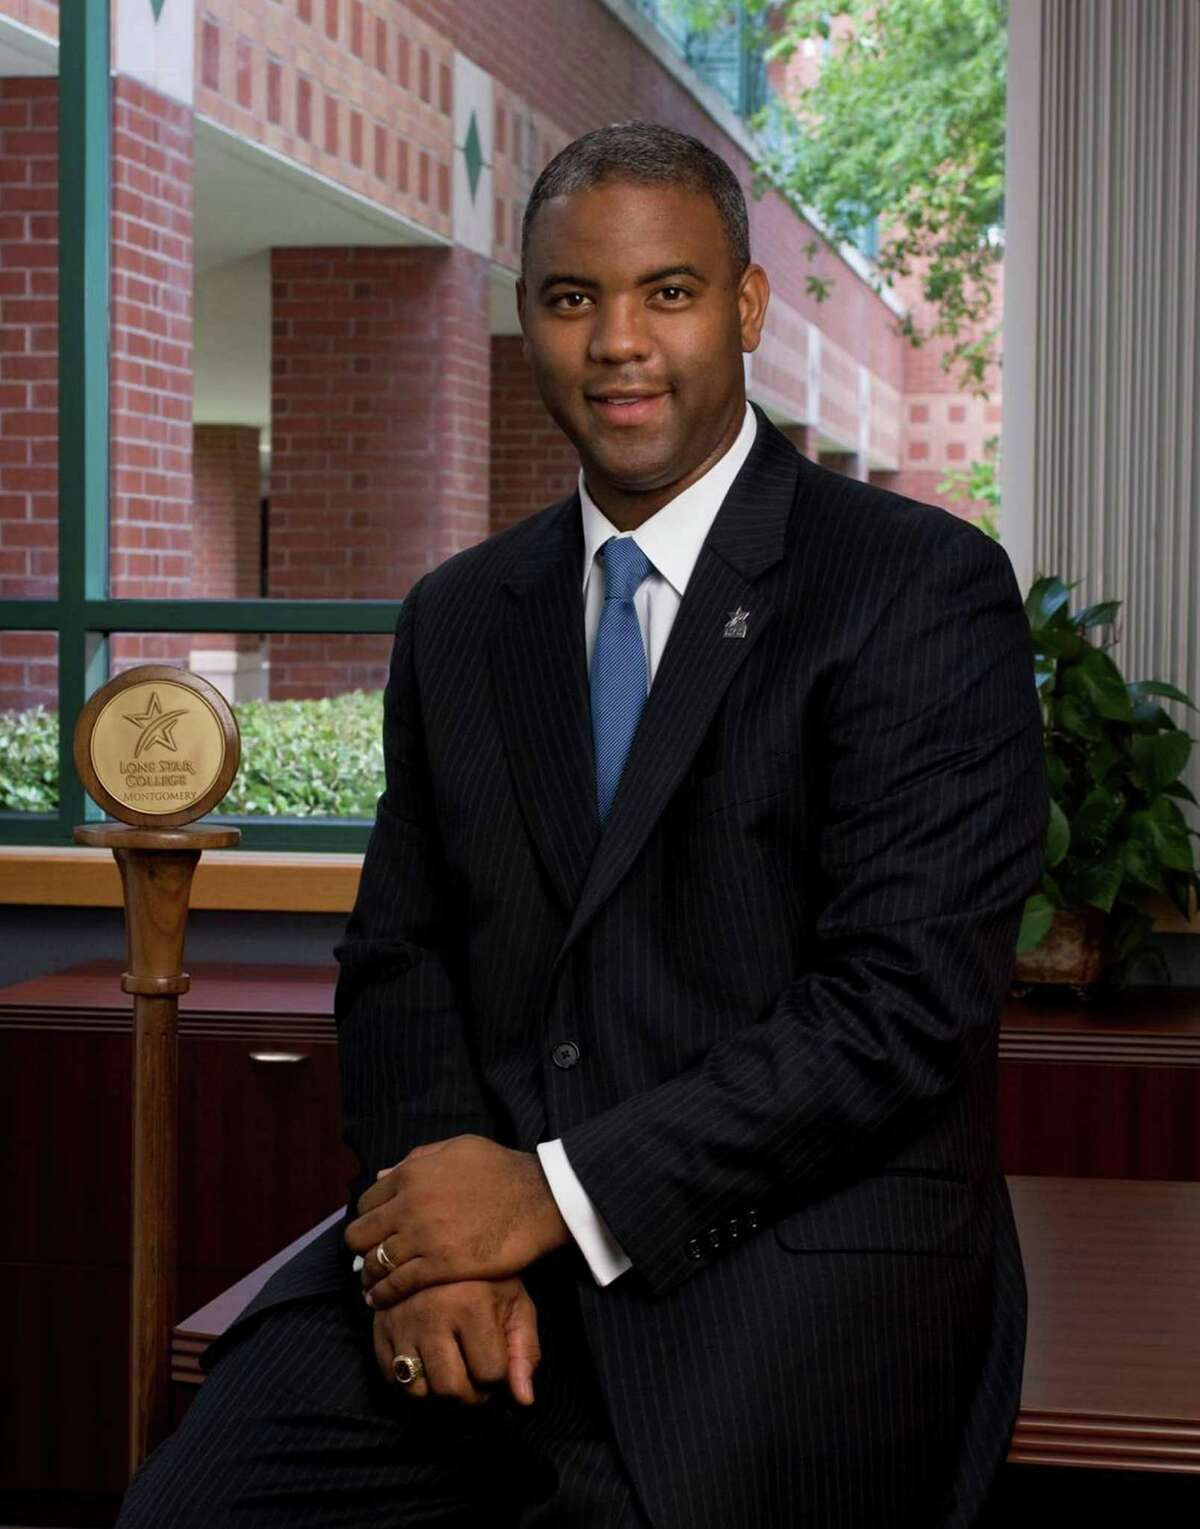 Texas Southern University's incoming presidentAustin Lane served as vice chancellor at Lone Star College.